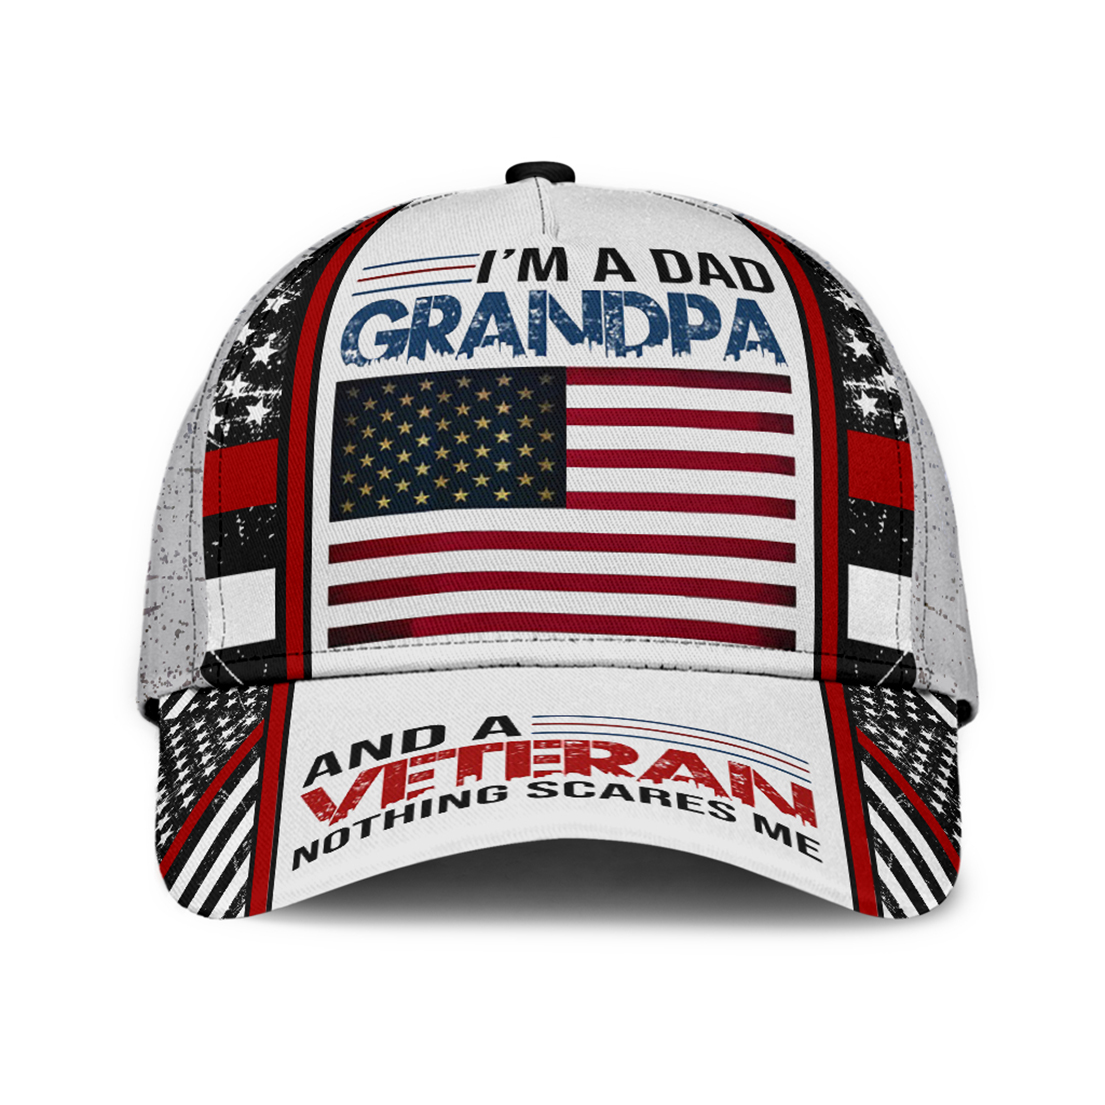 I'm a dad grandpa and a veteran nothing scares me hat cap - Picture 1